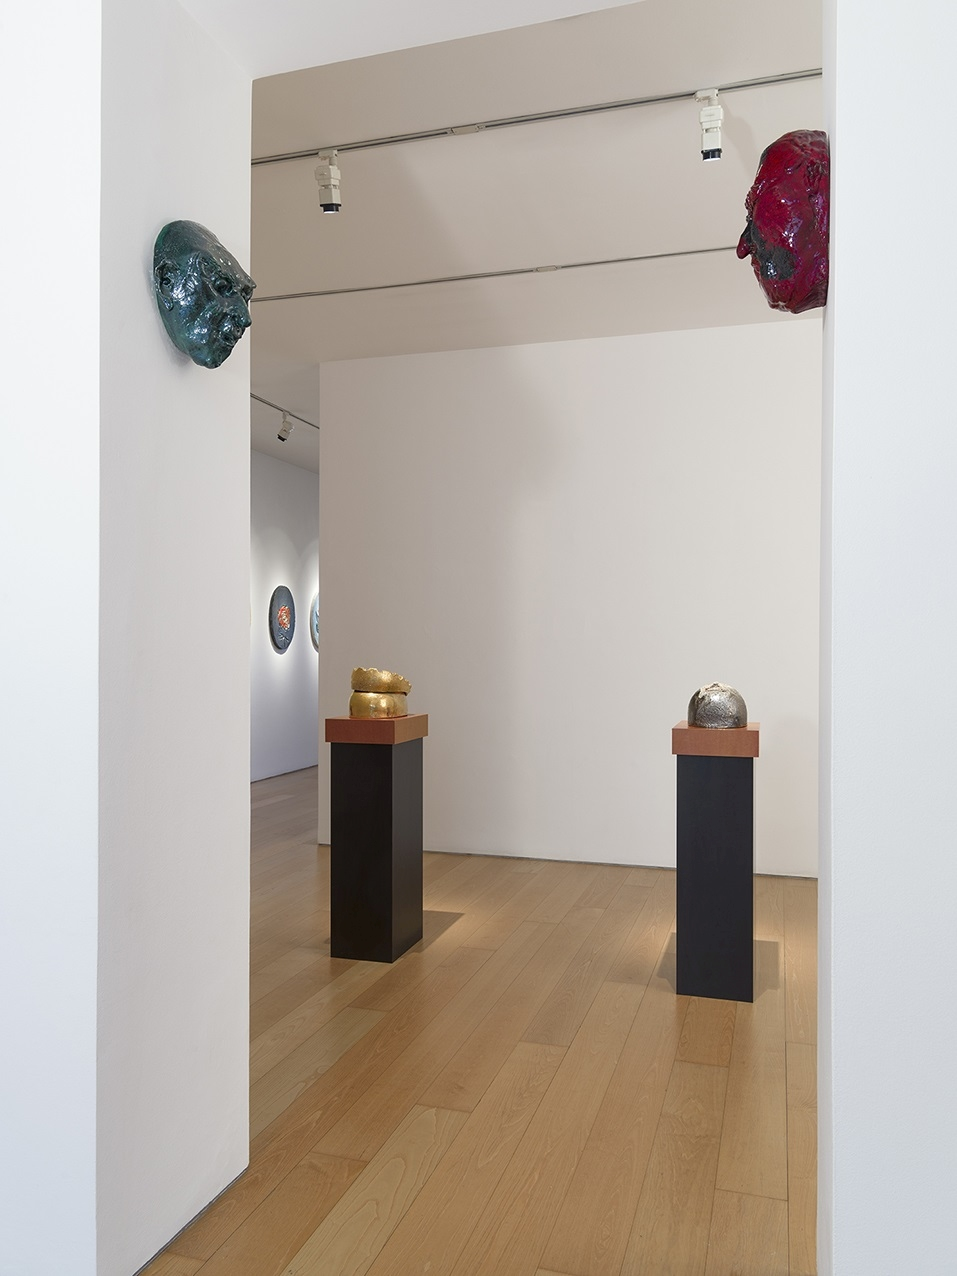 Thomas SCHÜTTE Installation View Athens, May 20 - July 15, 2015